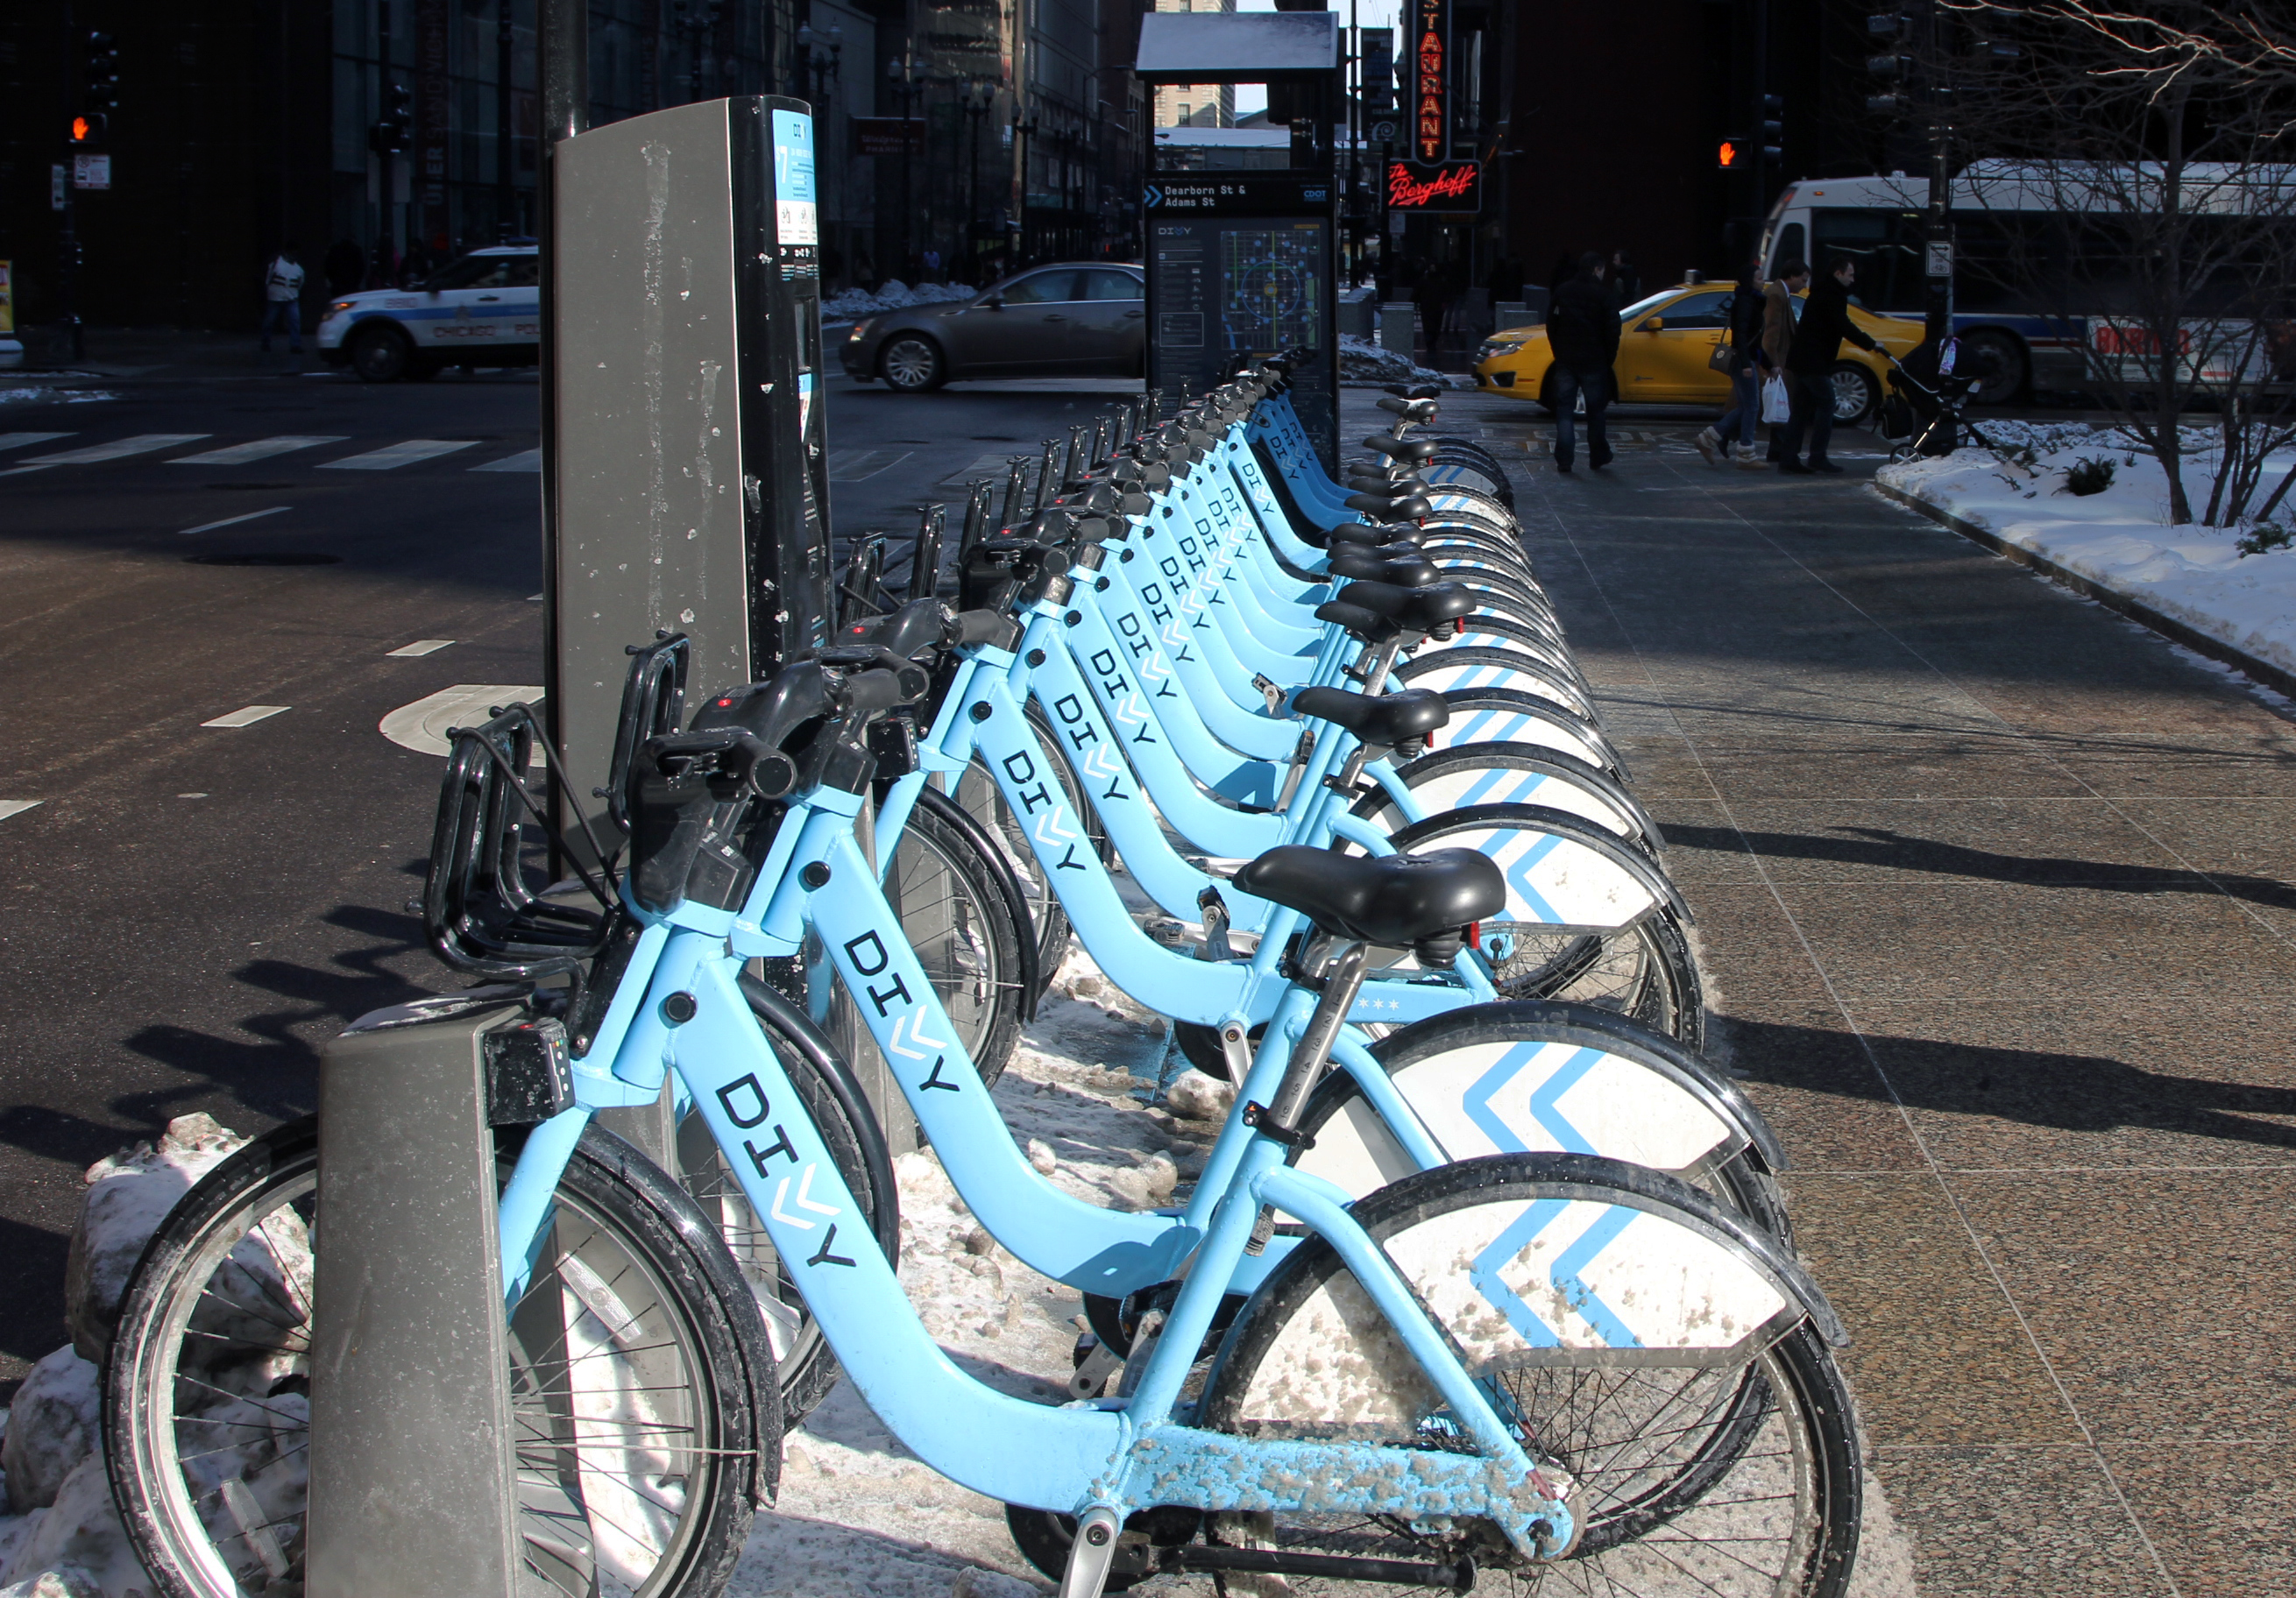 Divvy looks to Chicago for its road map – M.C.W. MURPHY on